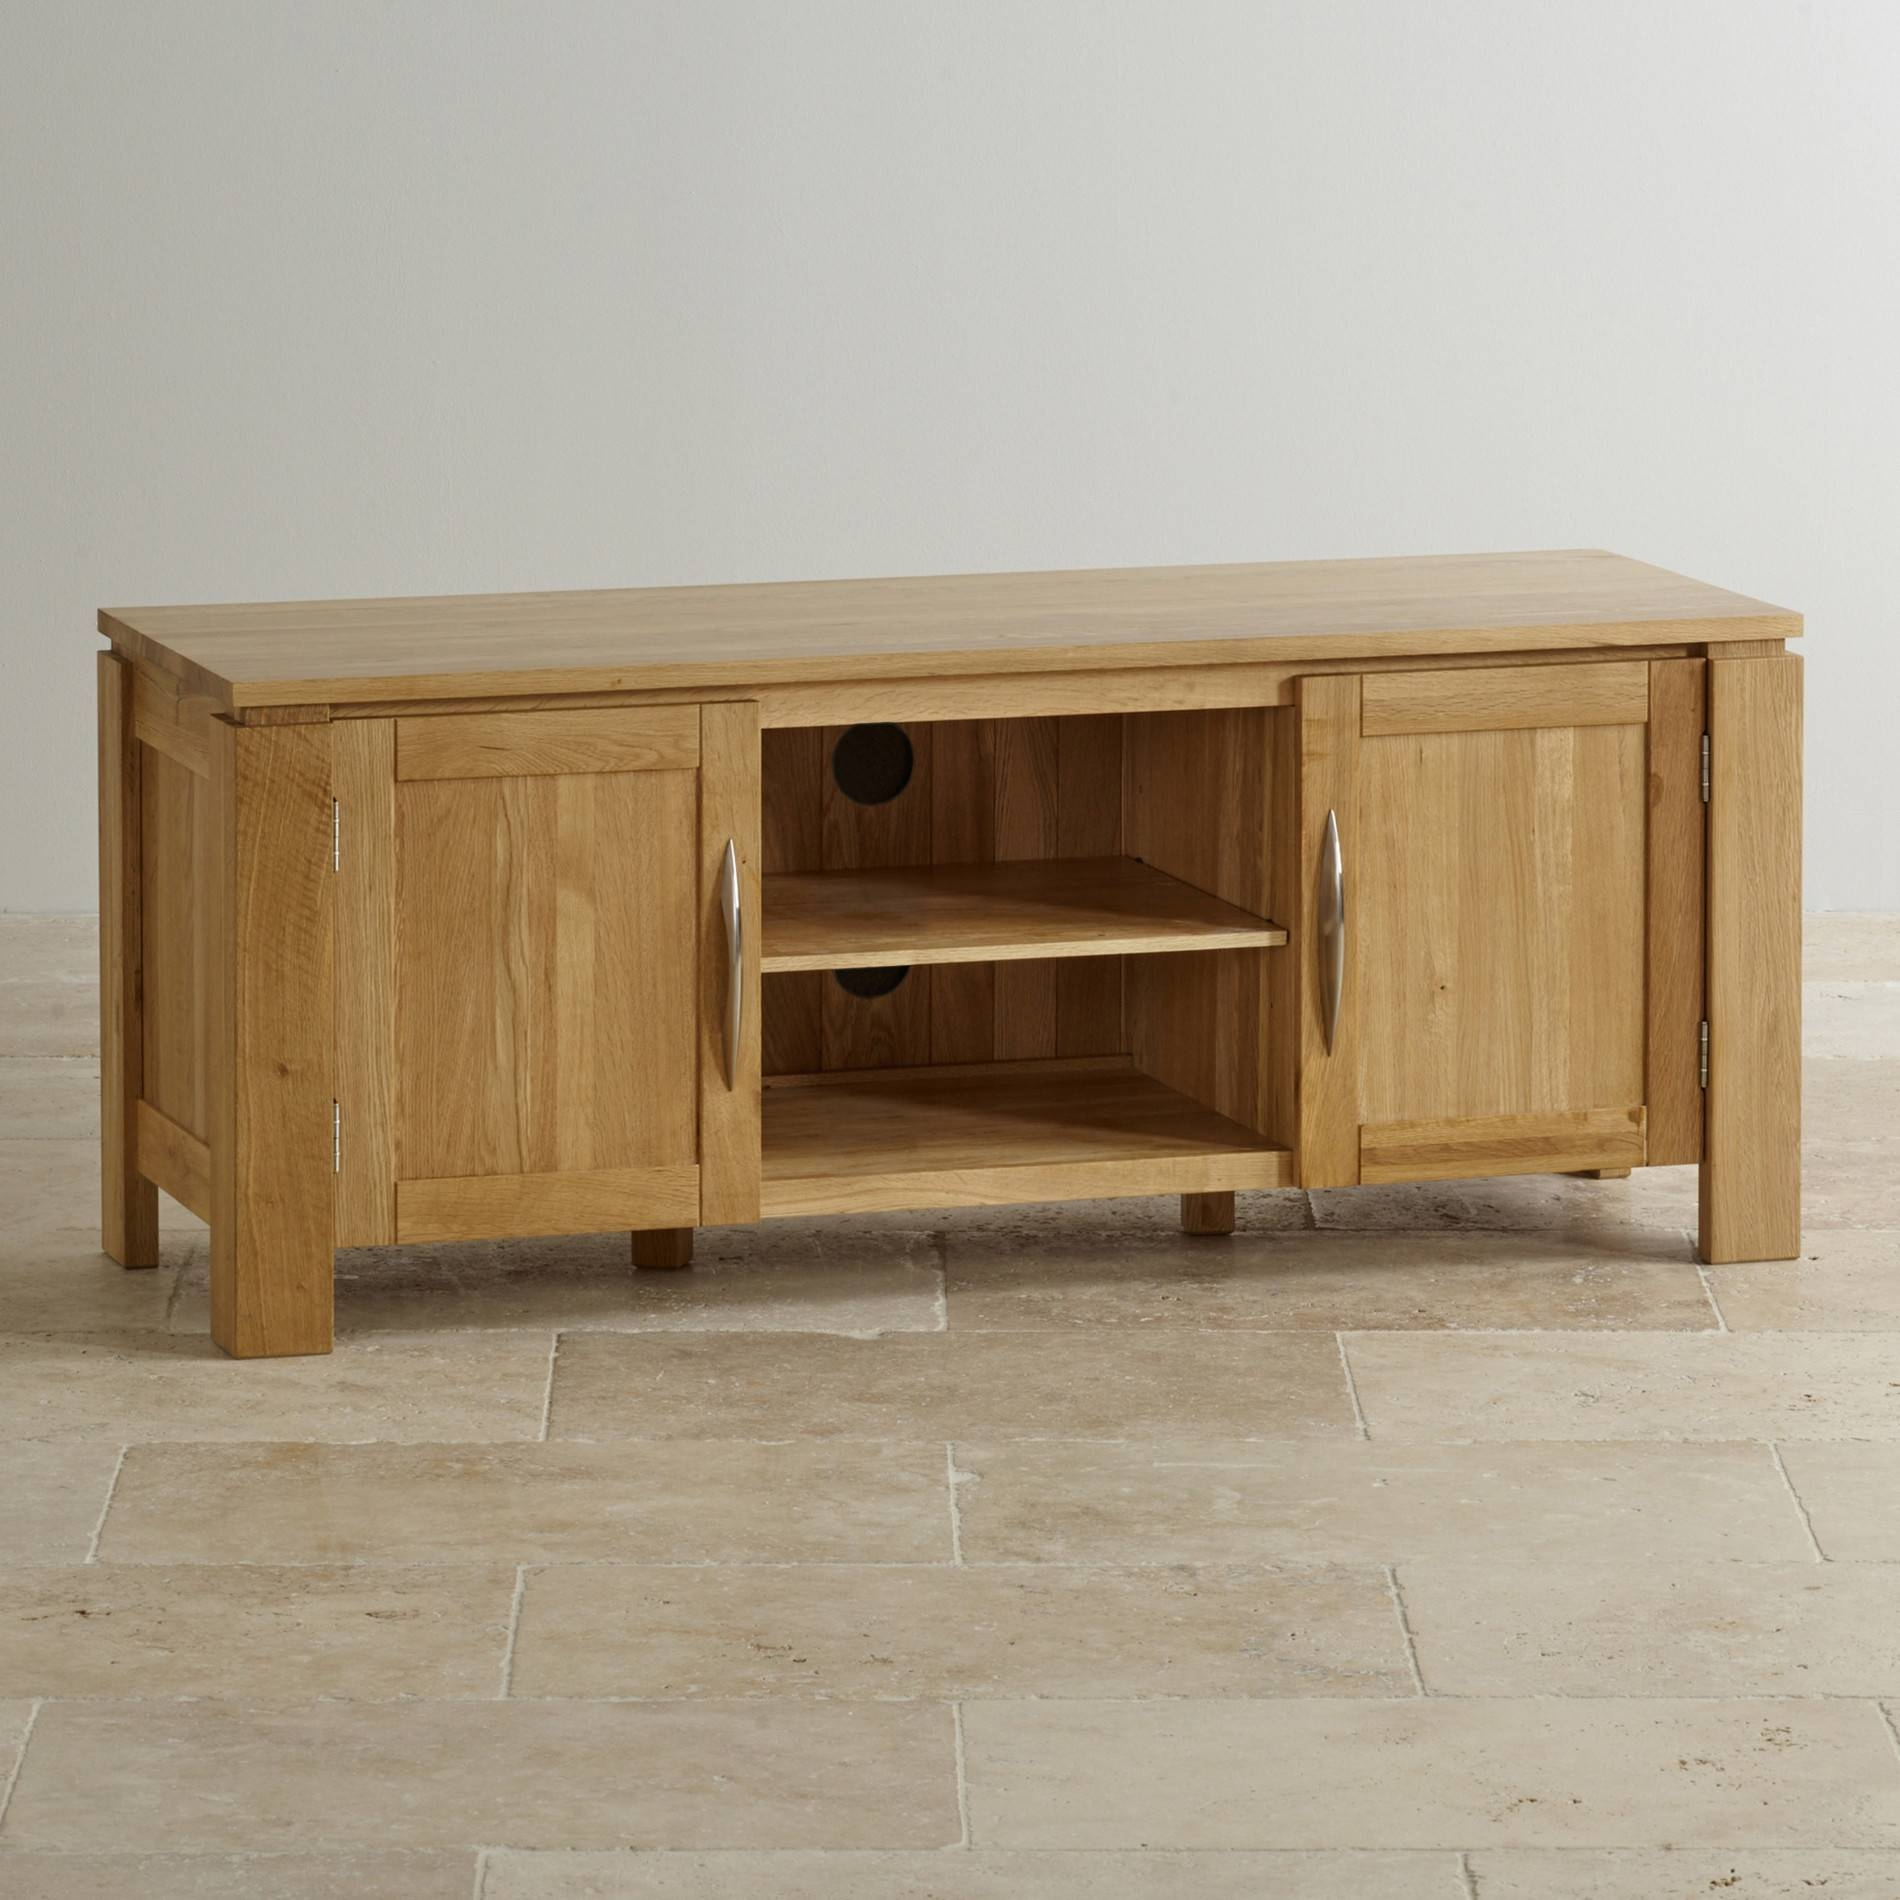 Galway Tv Cabinet In Natural Solid Oak | Oak Furniture Land pertaining to Oak Tv Cabinets (Image 5 of 15)